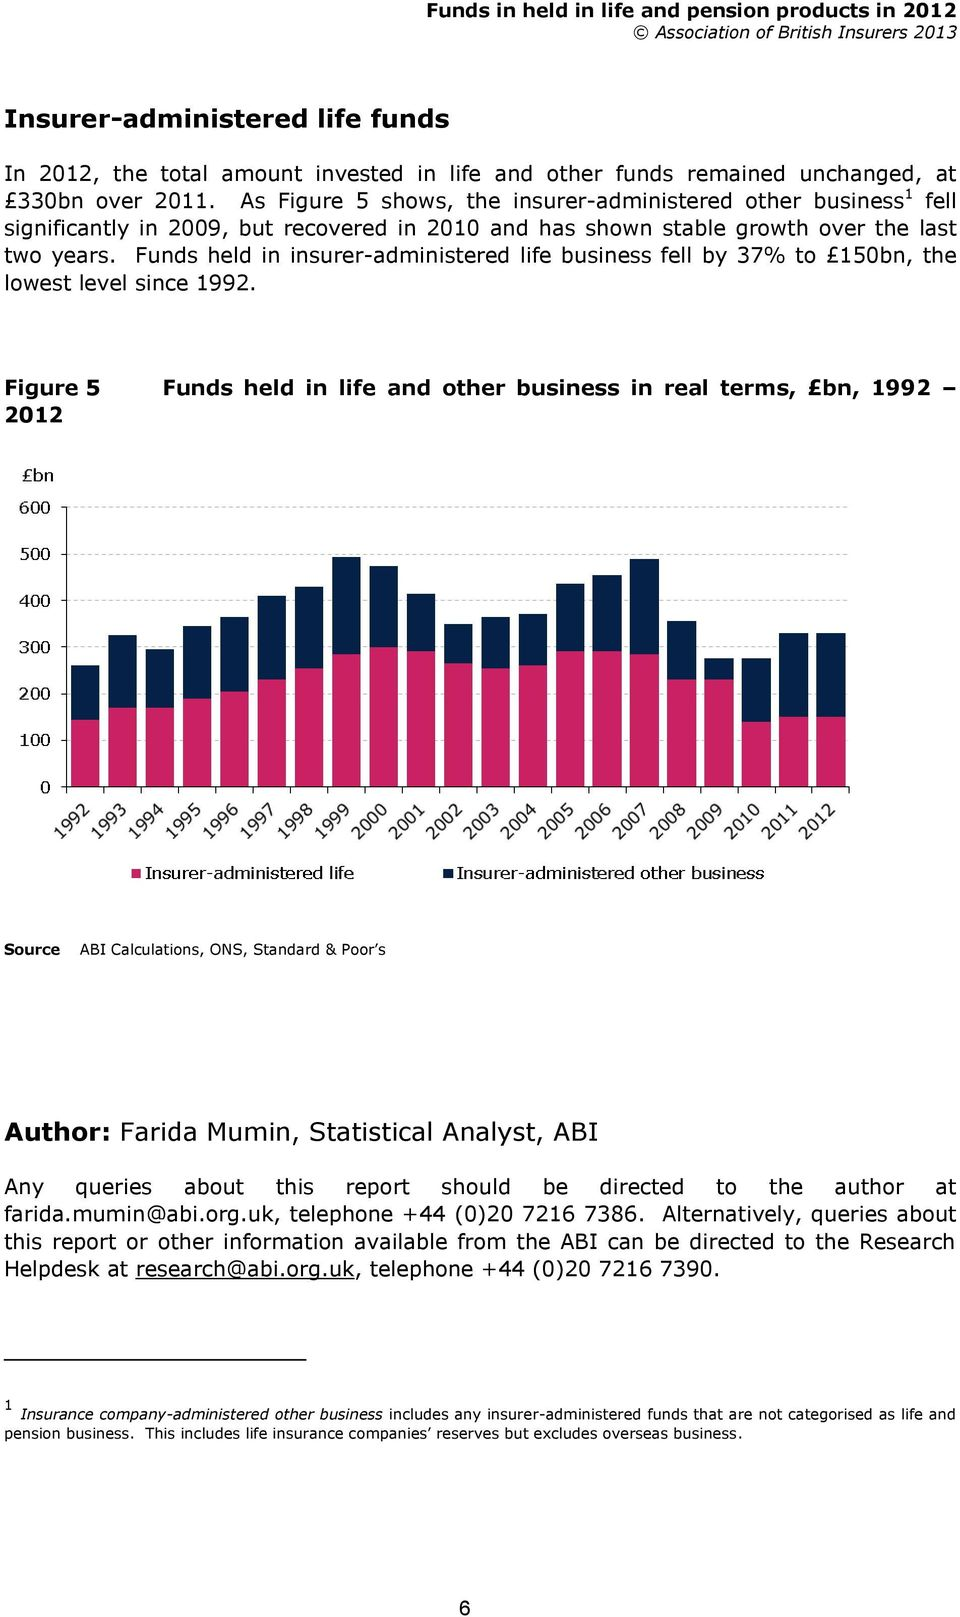 Funds held in insurer-administered life business fell by 37% to 150bn, the lowest level since 1992.